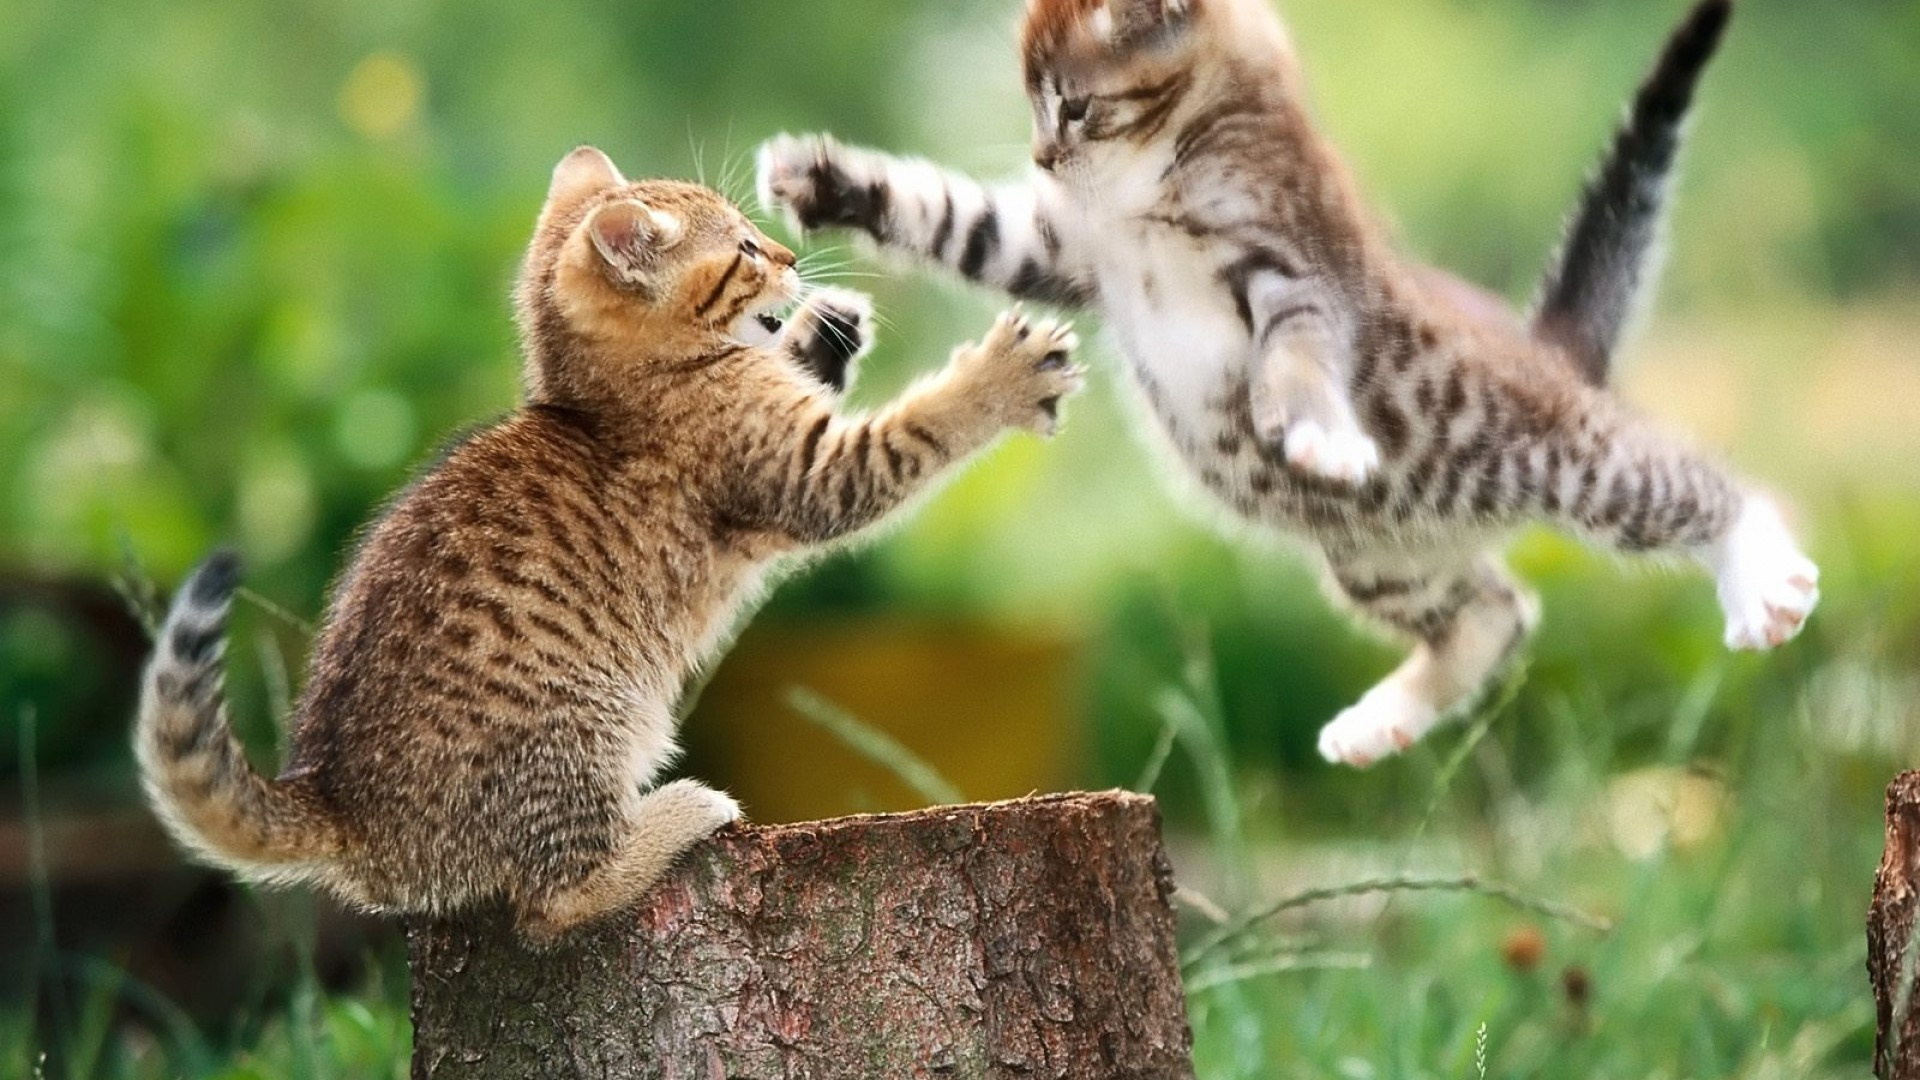 Wallpaper Kittens At Play Desktop High Quality WallpapersWallpaper 1920x1080